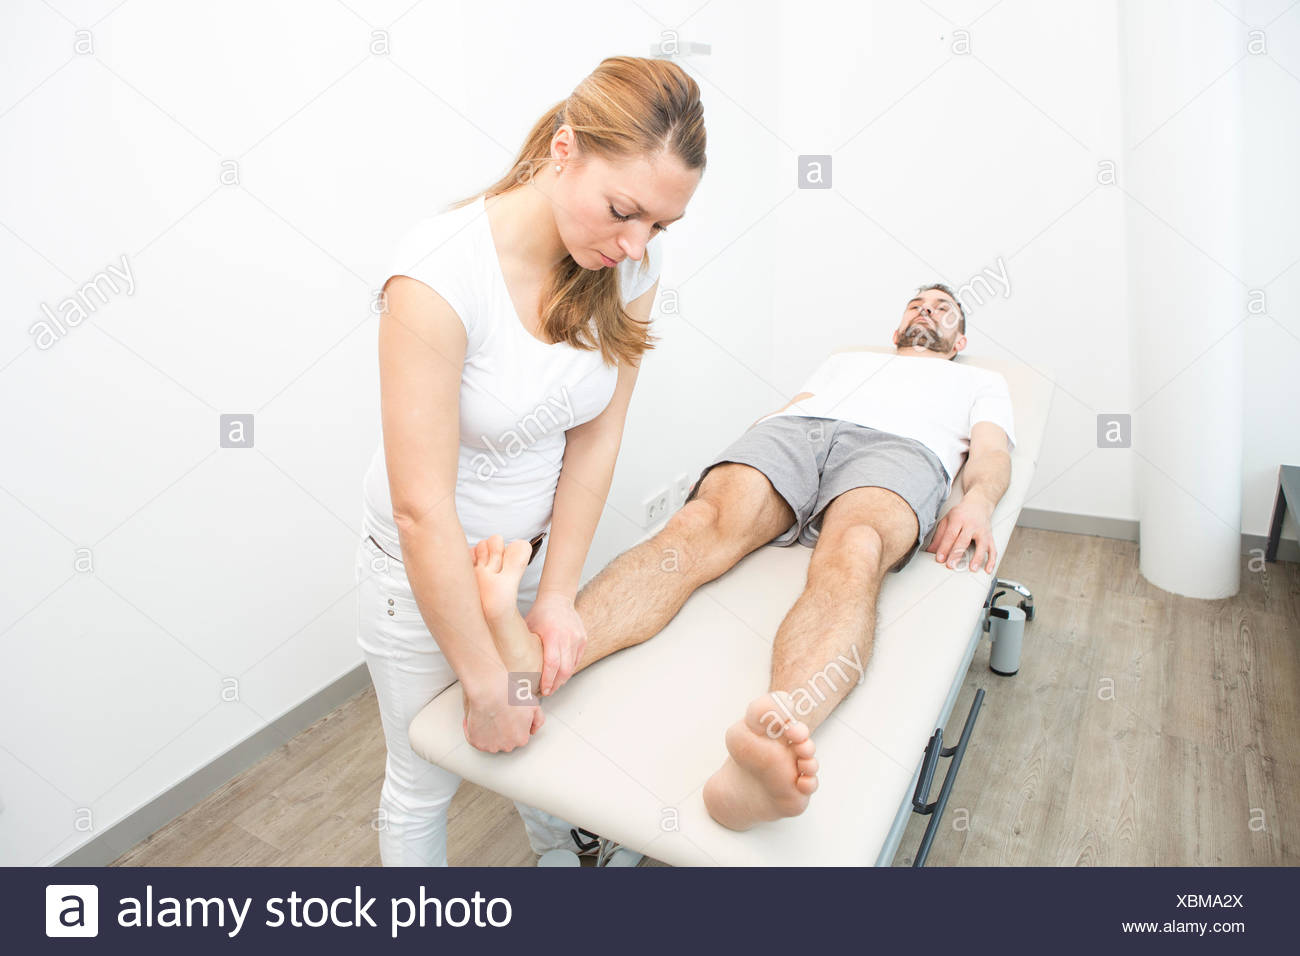 Physiotherapist helping patient to do leg exercise - Stock Image